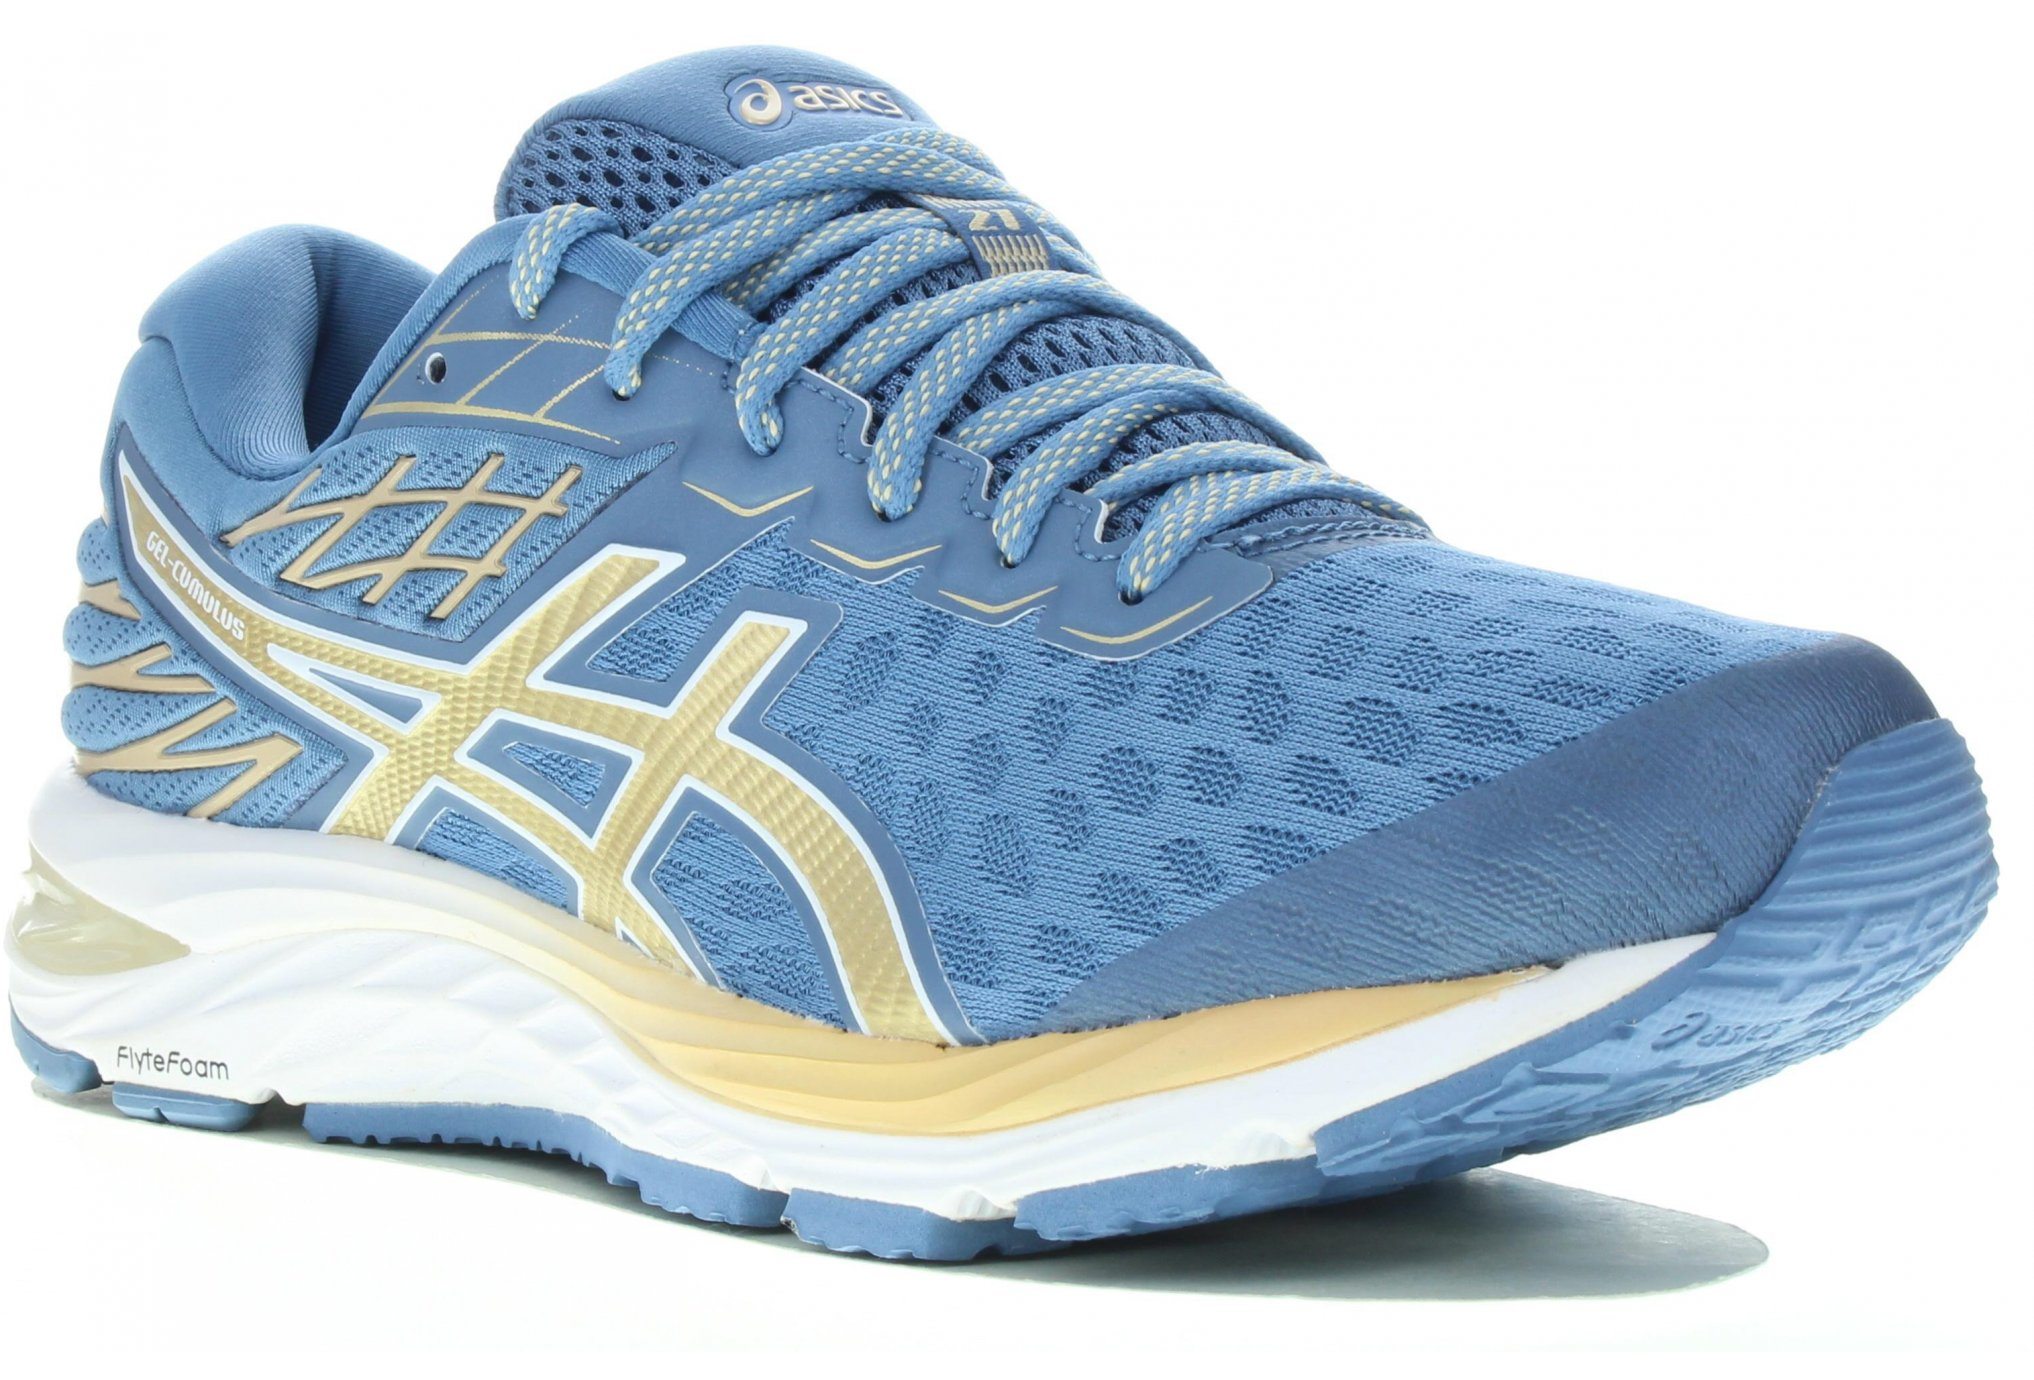 Asics Gel-Cumulus 21 The New Strong W Chaussures running femme